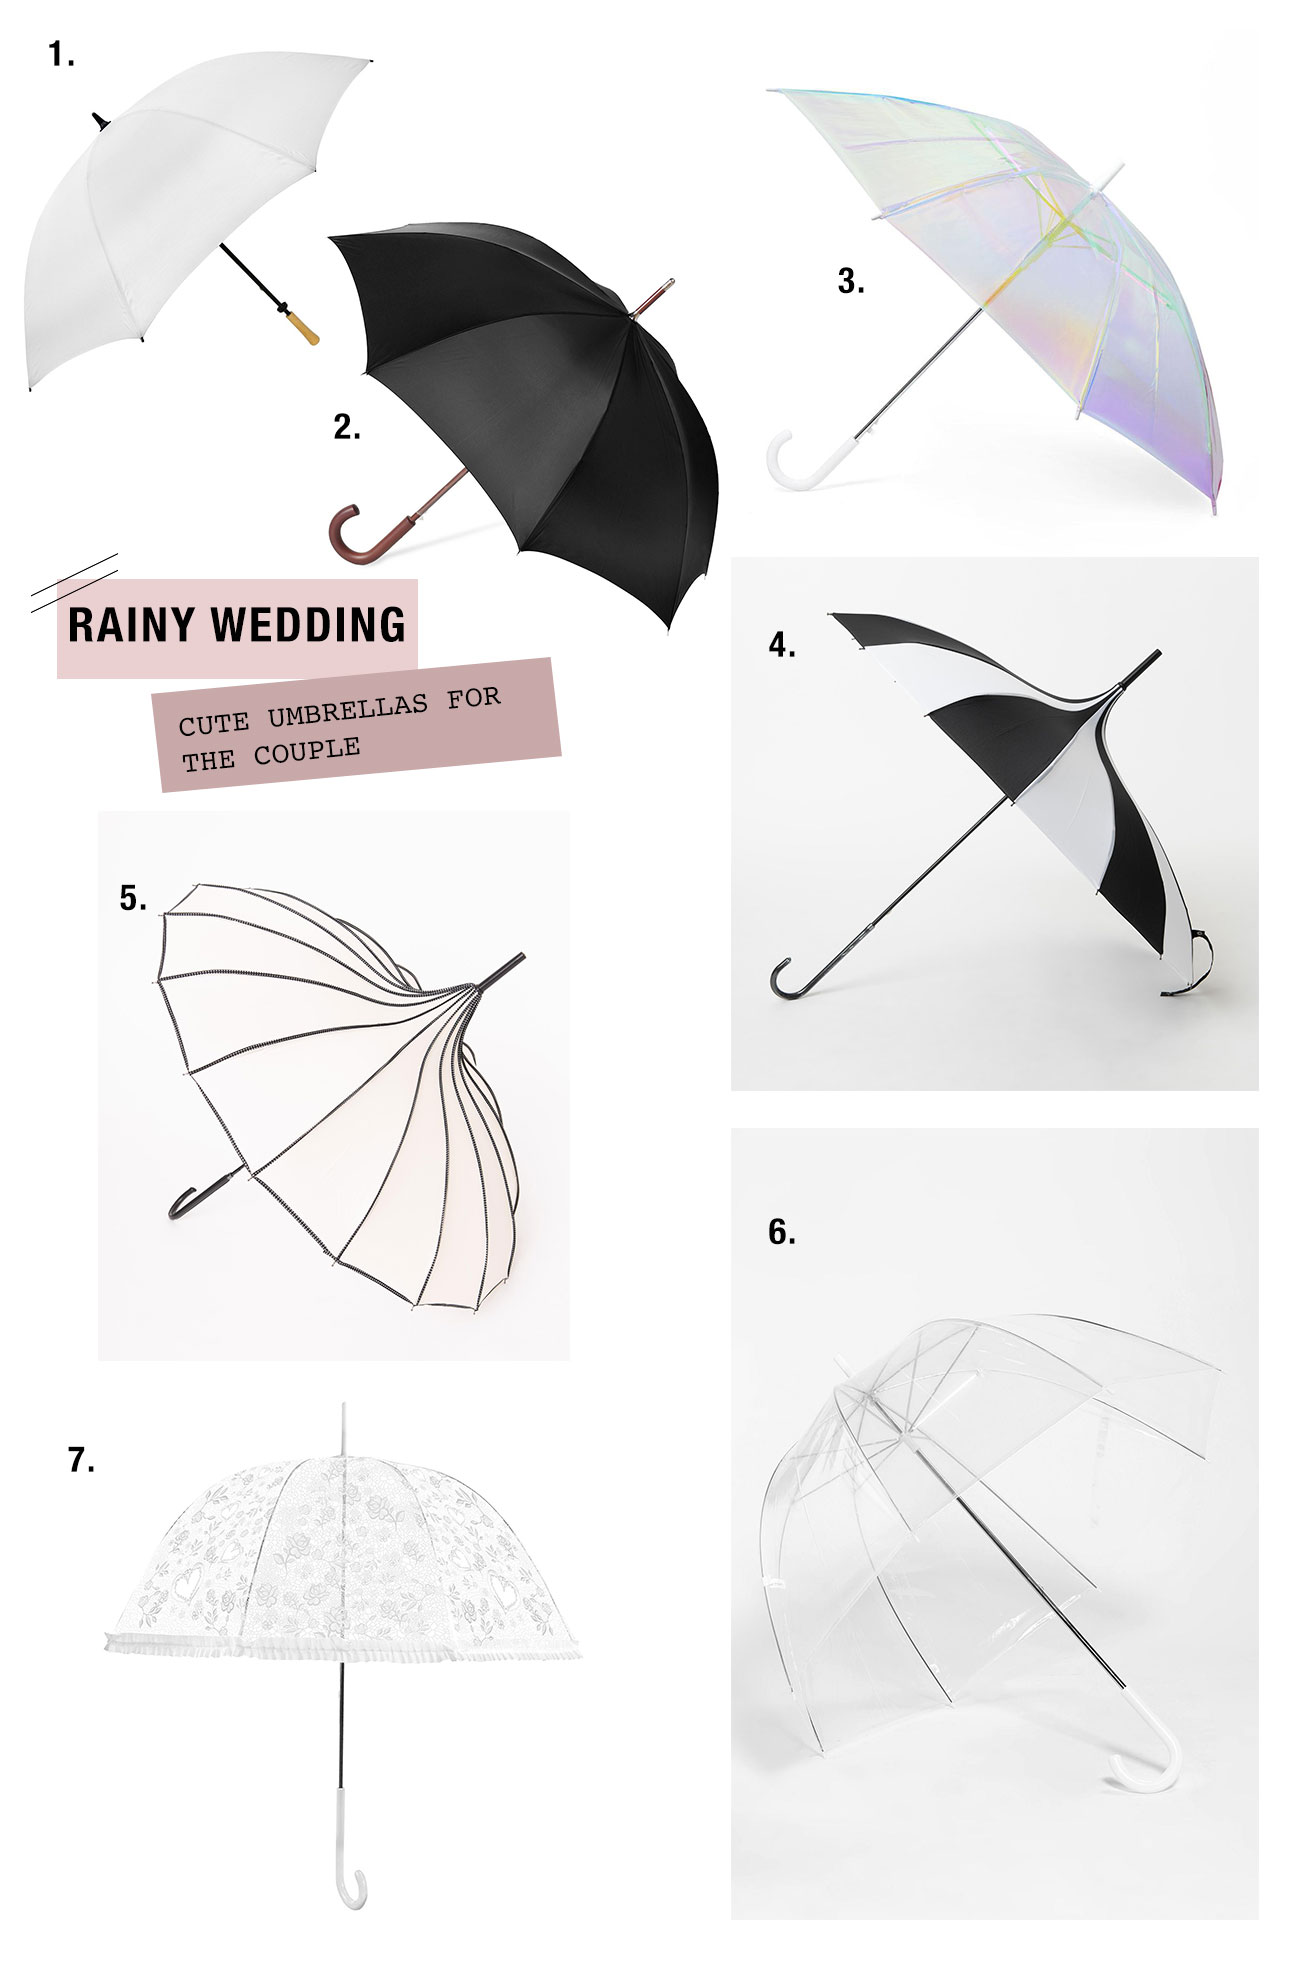 the cutest umbrellas for your rainy wedding day